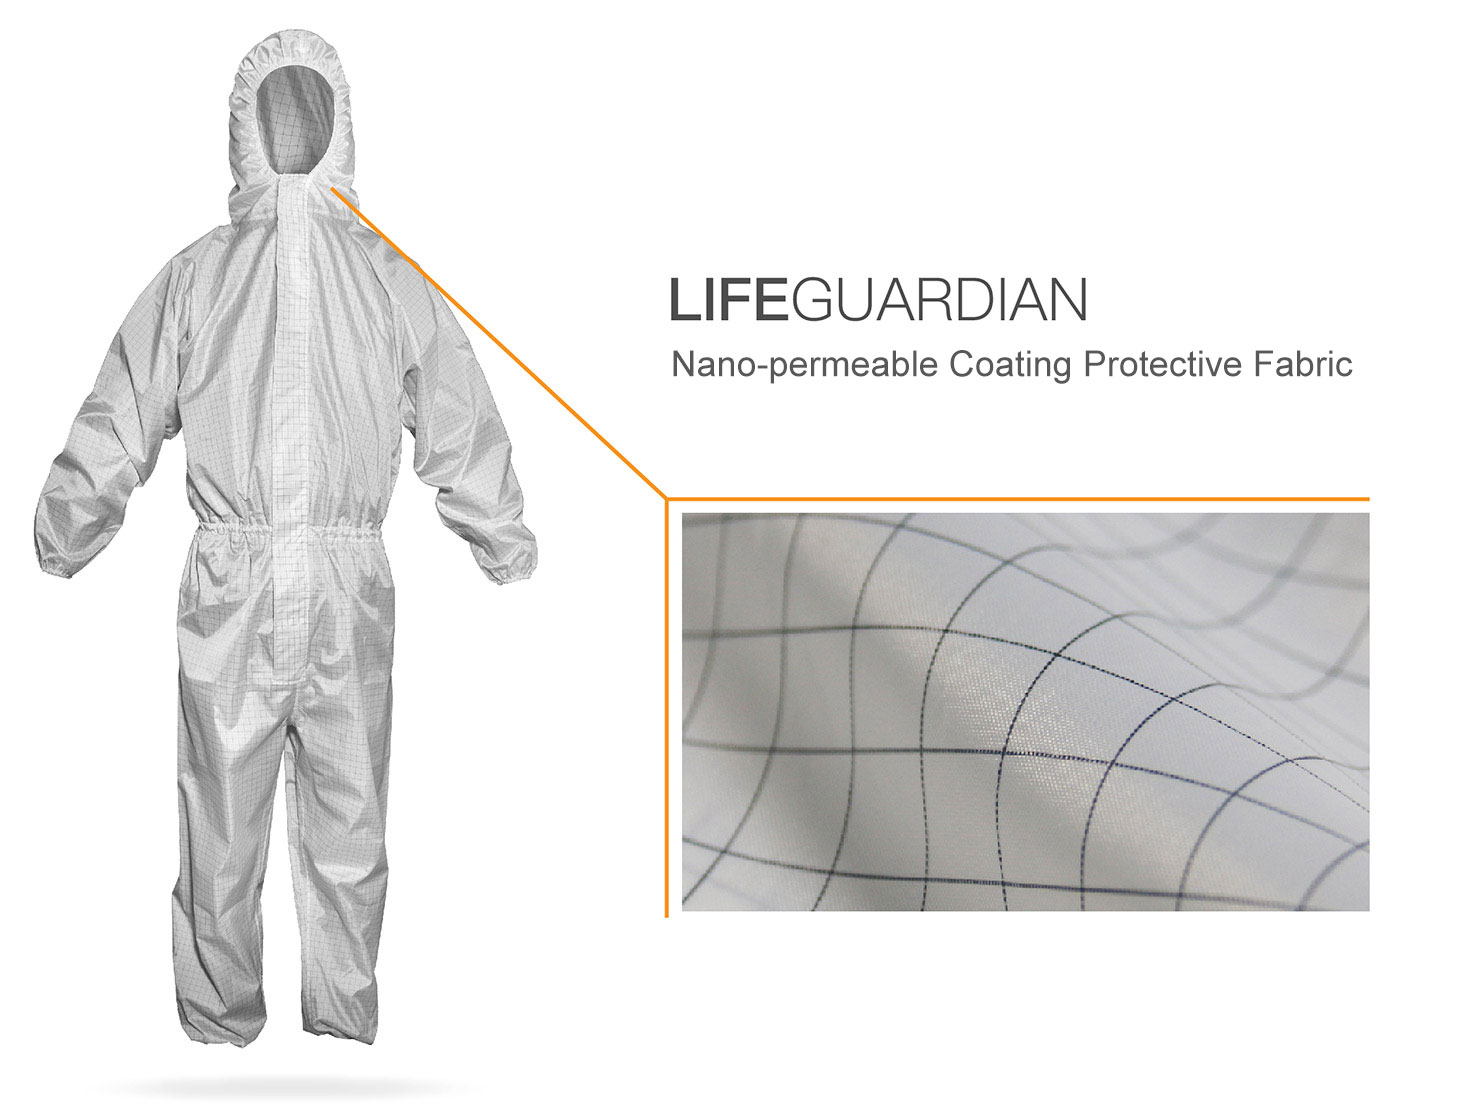 What are the nonwoven materials used in medical protective clothing